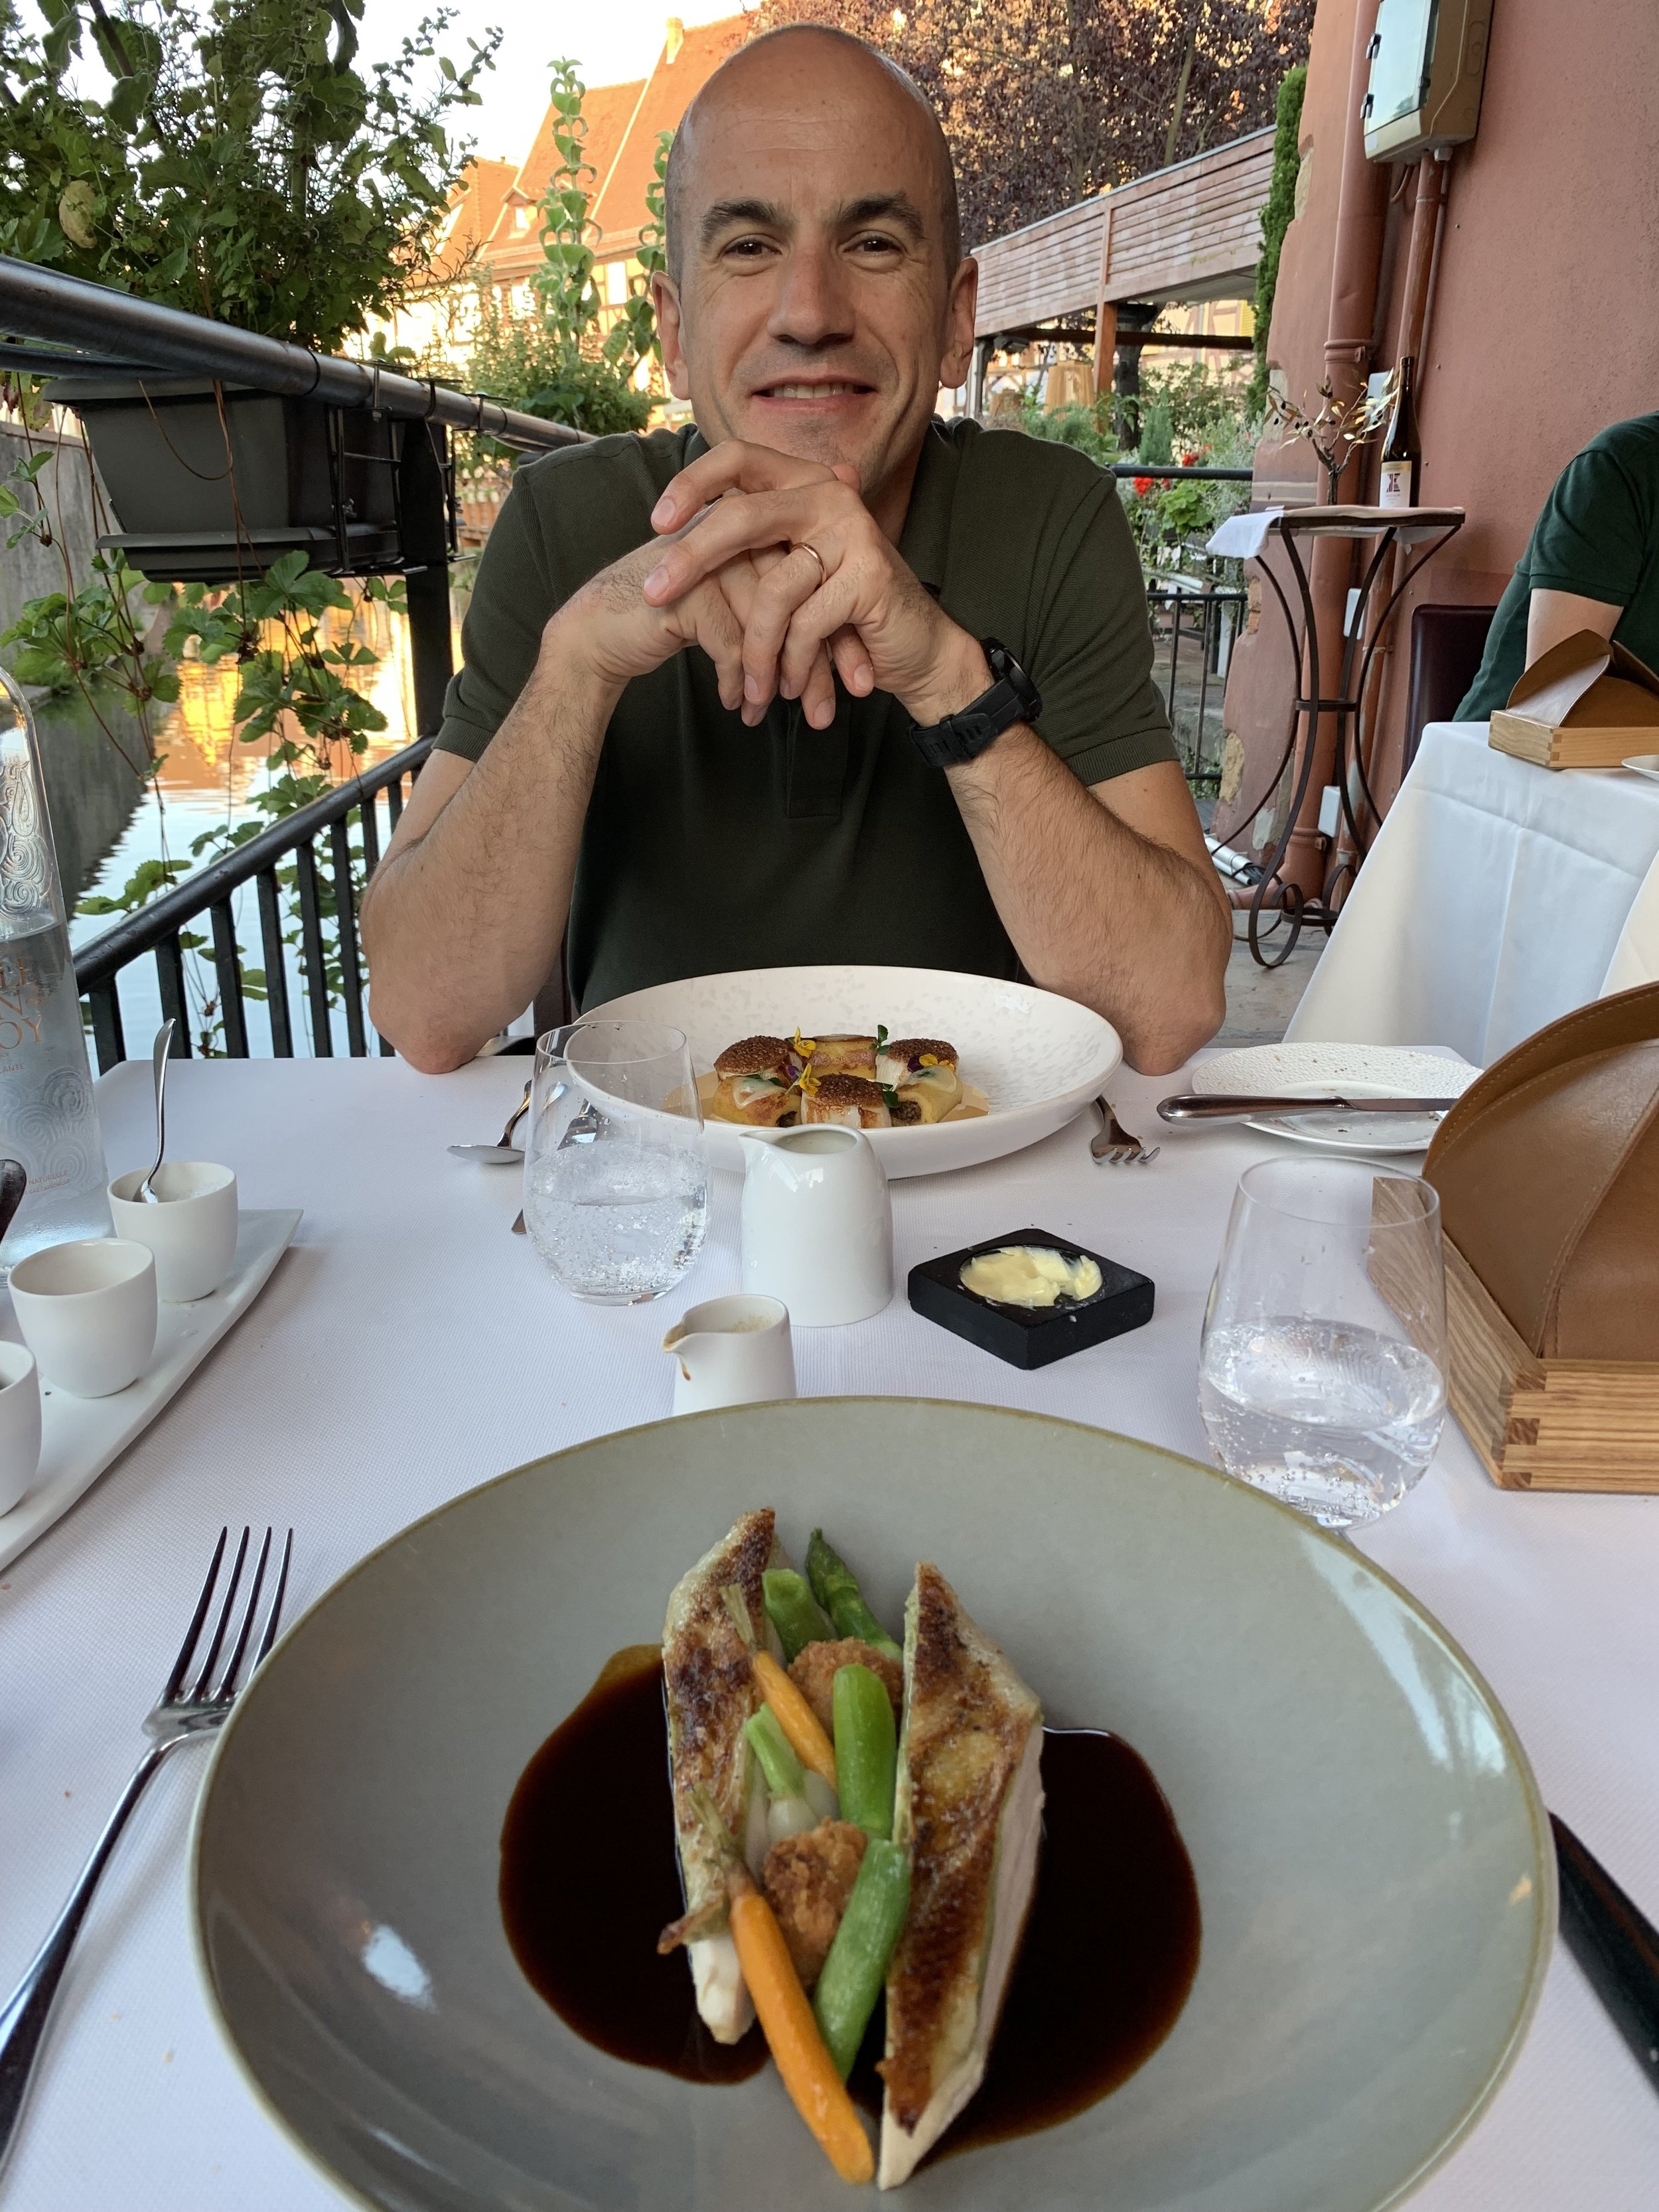 The birthday boy with our main courses at dinner on the terrace at JY's. Colmar, France. August 10, 2019.